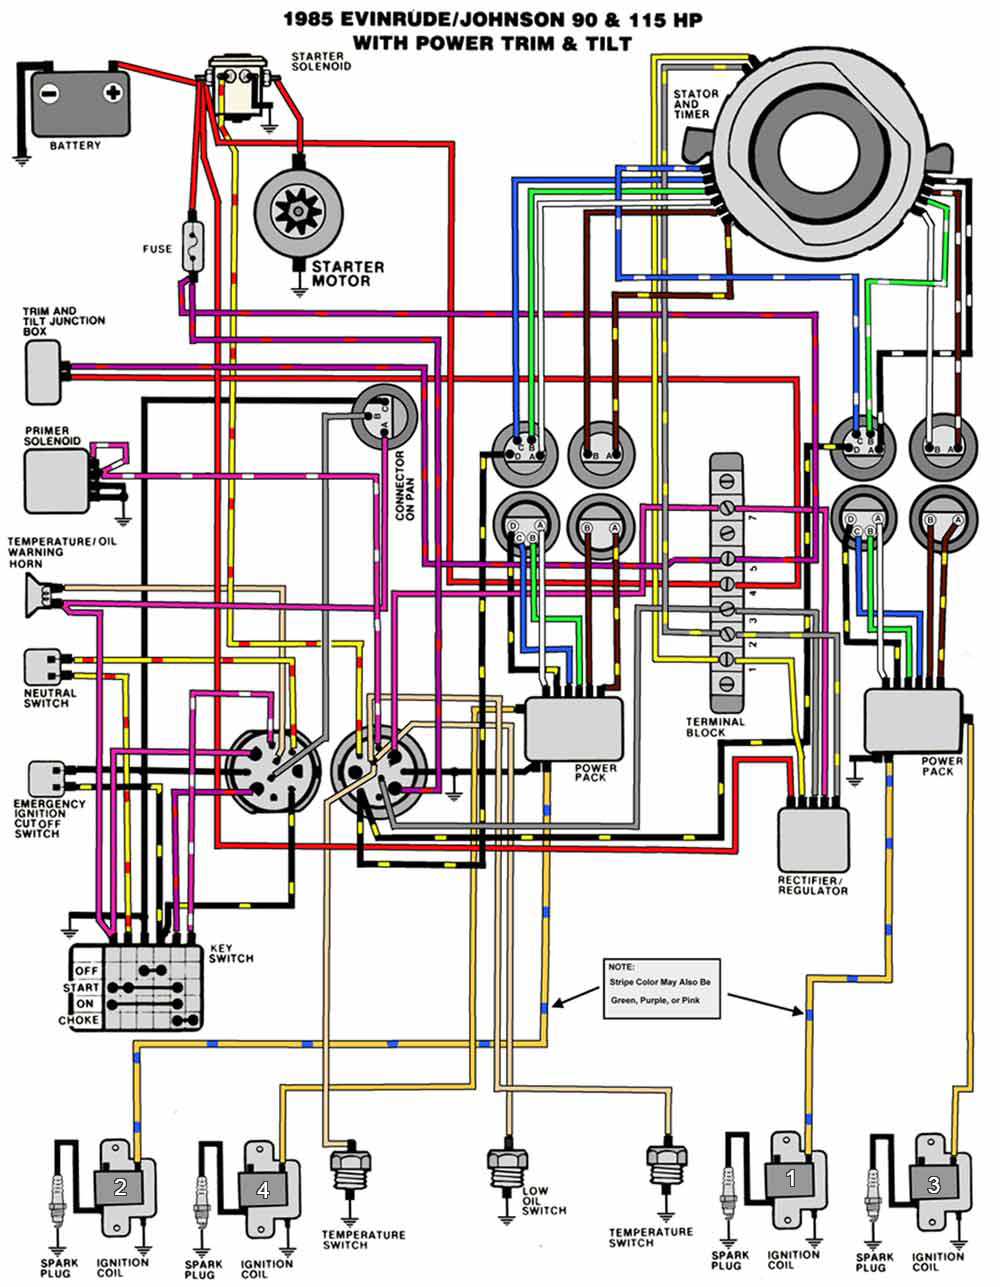 1985_90_115TnT mastertech marine evinrude johnson outboard wiring diagrams evinrude wiring diagram at bayanpartner.co